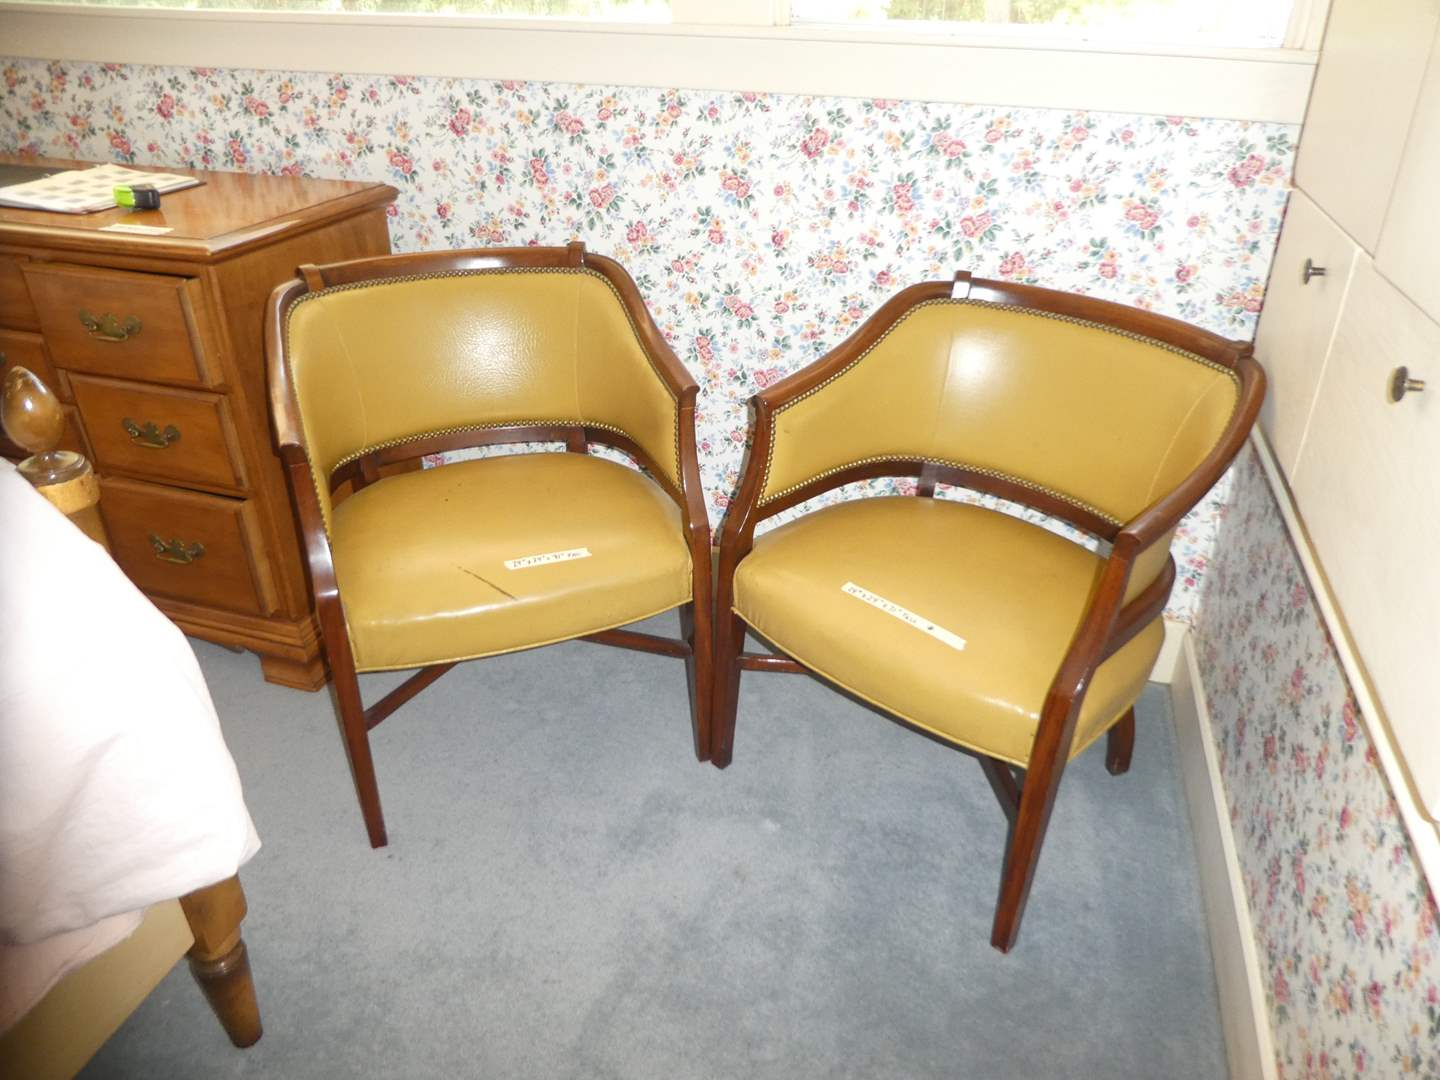 Lot # 10 - Pair of Adorable Vintage Leather Accent Chairs w/ Nailed Trim Details  (main image)